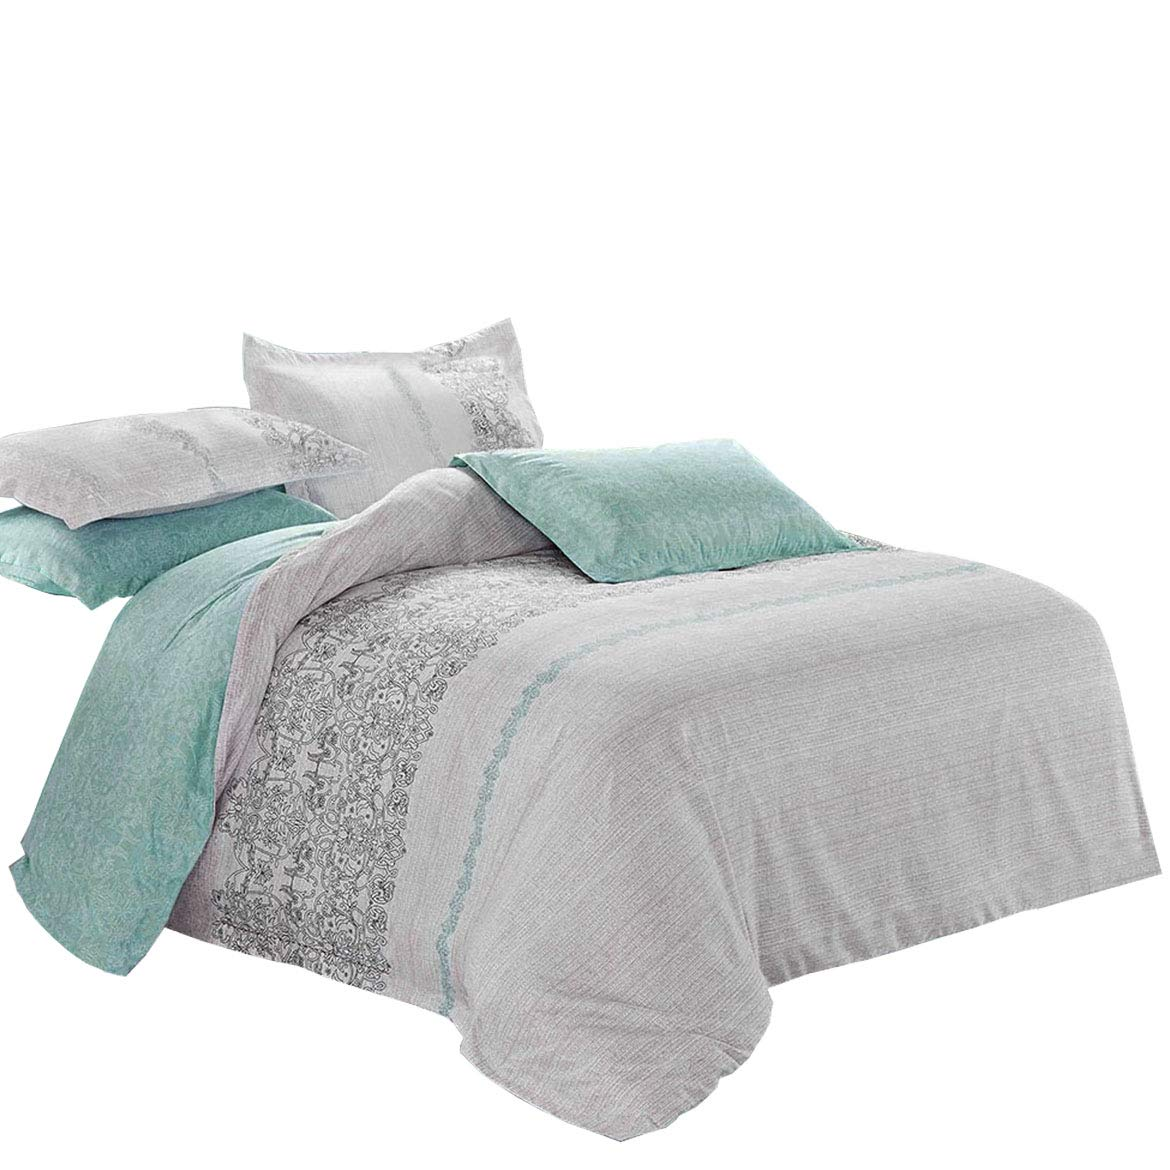 Wake In Cloud - Gray Duvet Cover Set, Reversible with Grey Teal Turquoise, Soft Microfiber Bedding with Zipper Closure (3pcs, Full Size)